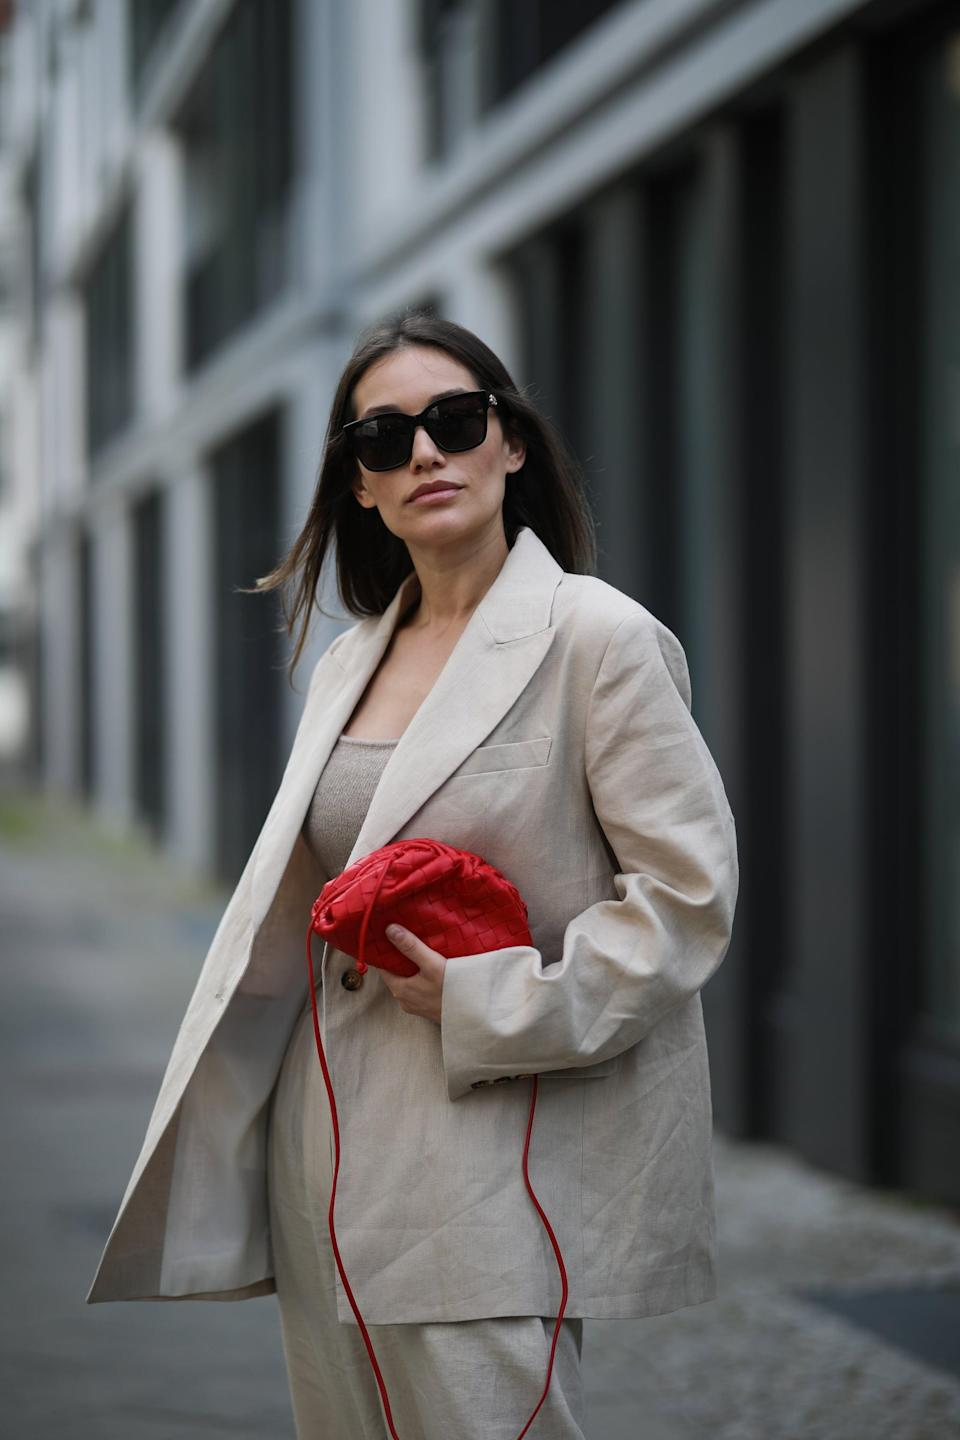 <p>Fashion's return to trends of the early aughts have inspired an enjoyable range of shield sunglasses designs from new brands. Alternatively, you can go the vintage route when shopping out this style, too. </p>